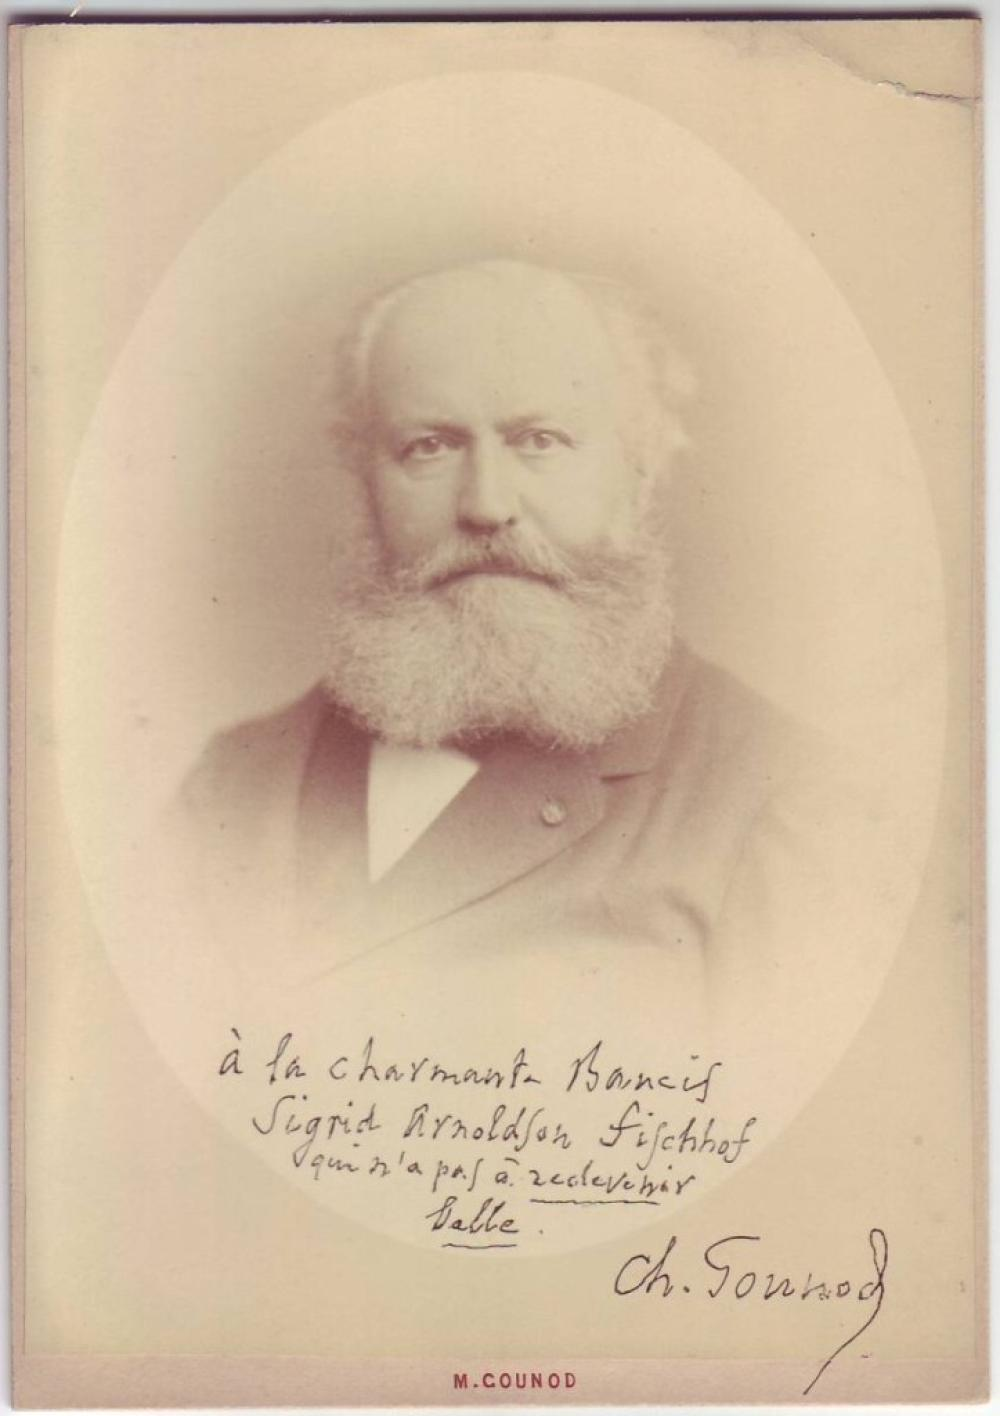 GOUNOD, CHARLES. Photograph Signed and Inscribed: